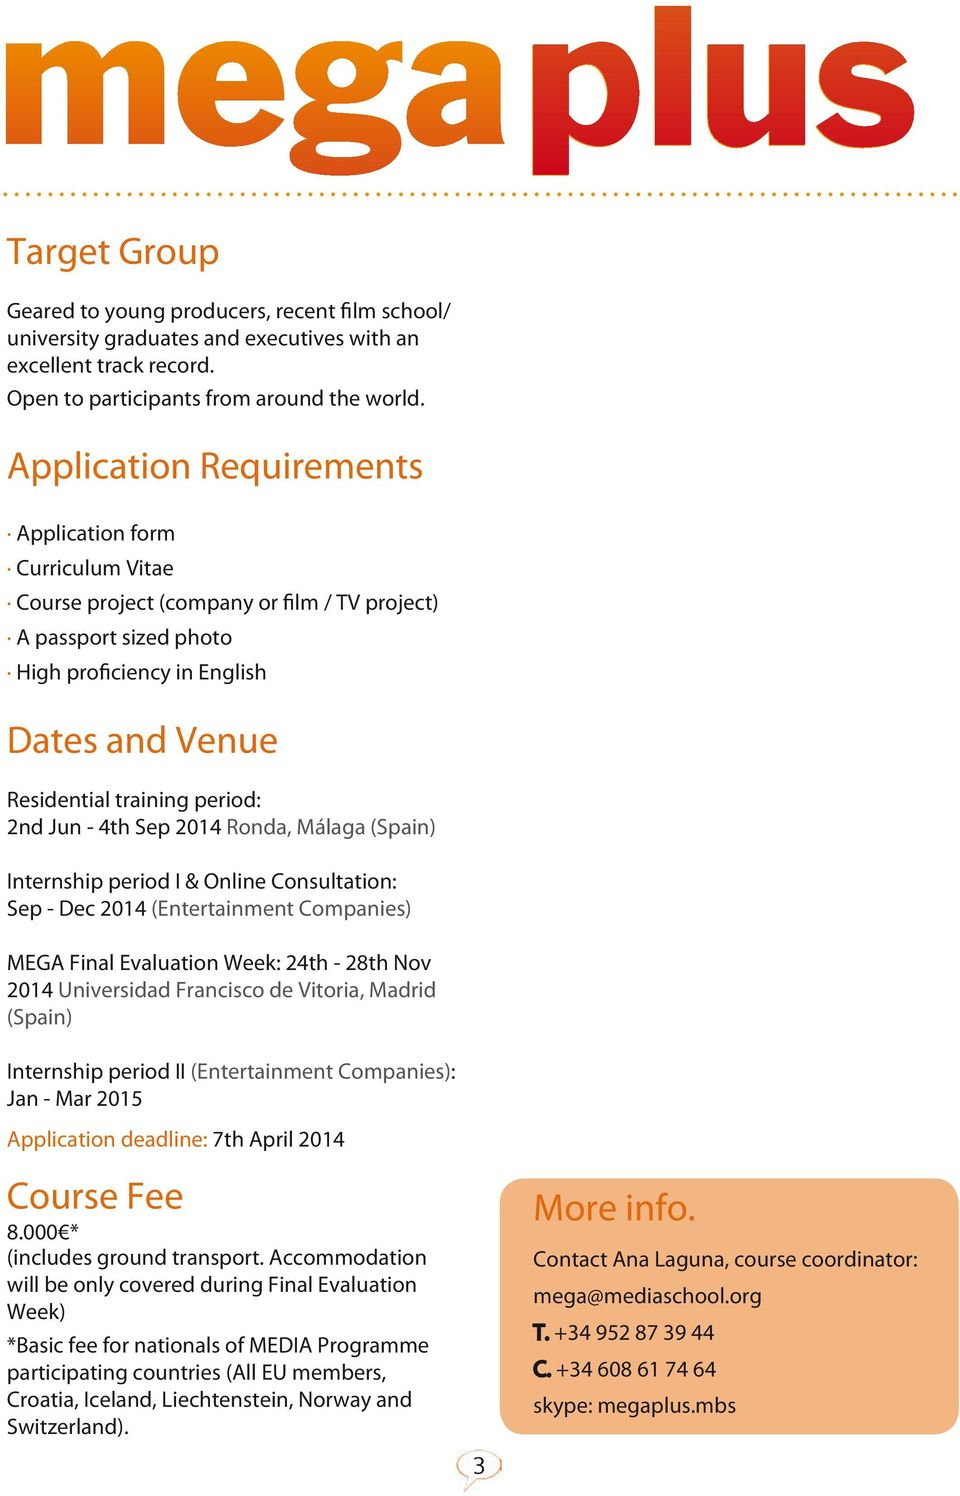 period: 2nd Jun - 4th Sep 2014 Ronda, Málaga (Spain) Internship period I & Online Consultation: Sep - Dec 2014 (Entertainment Companies) MEGA Final Evaluation Week: 24th - 28th Nov 2014 Universidad